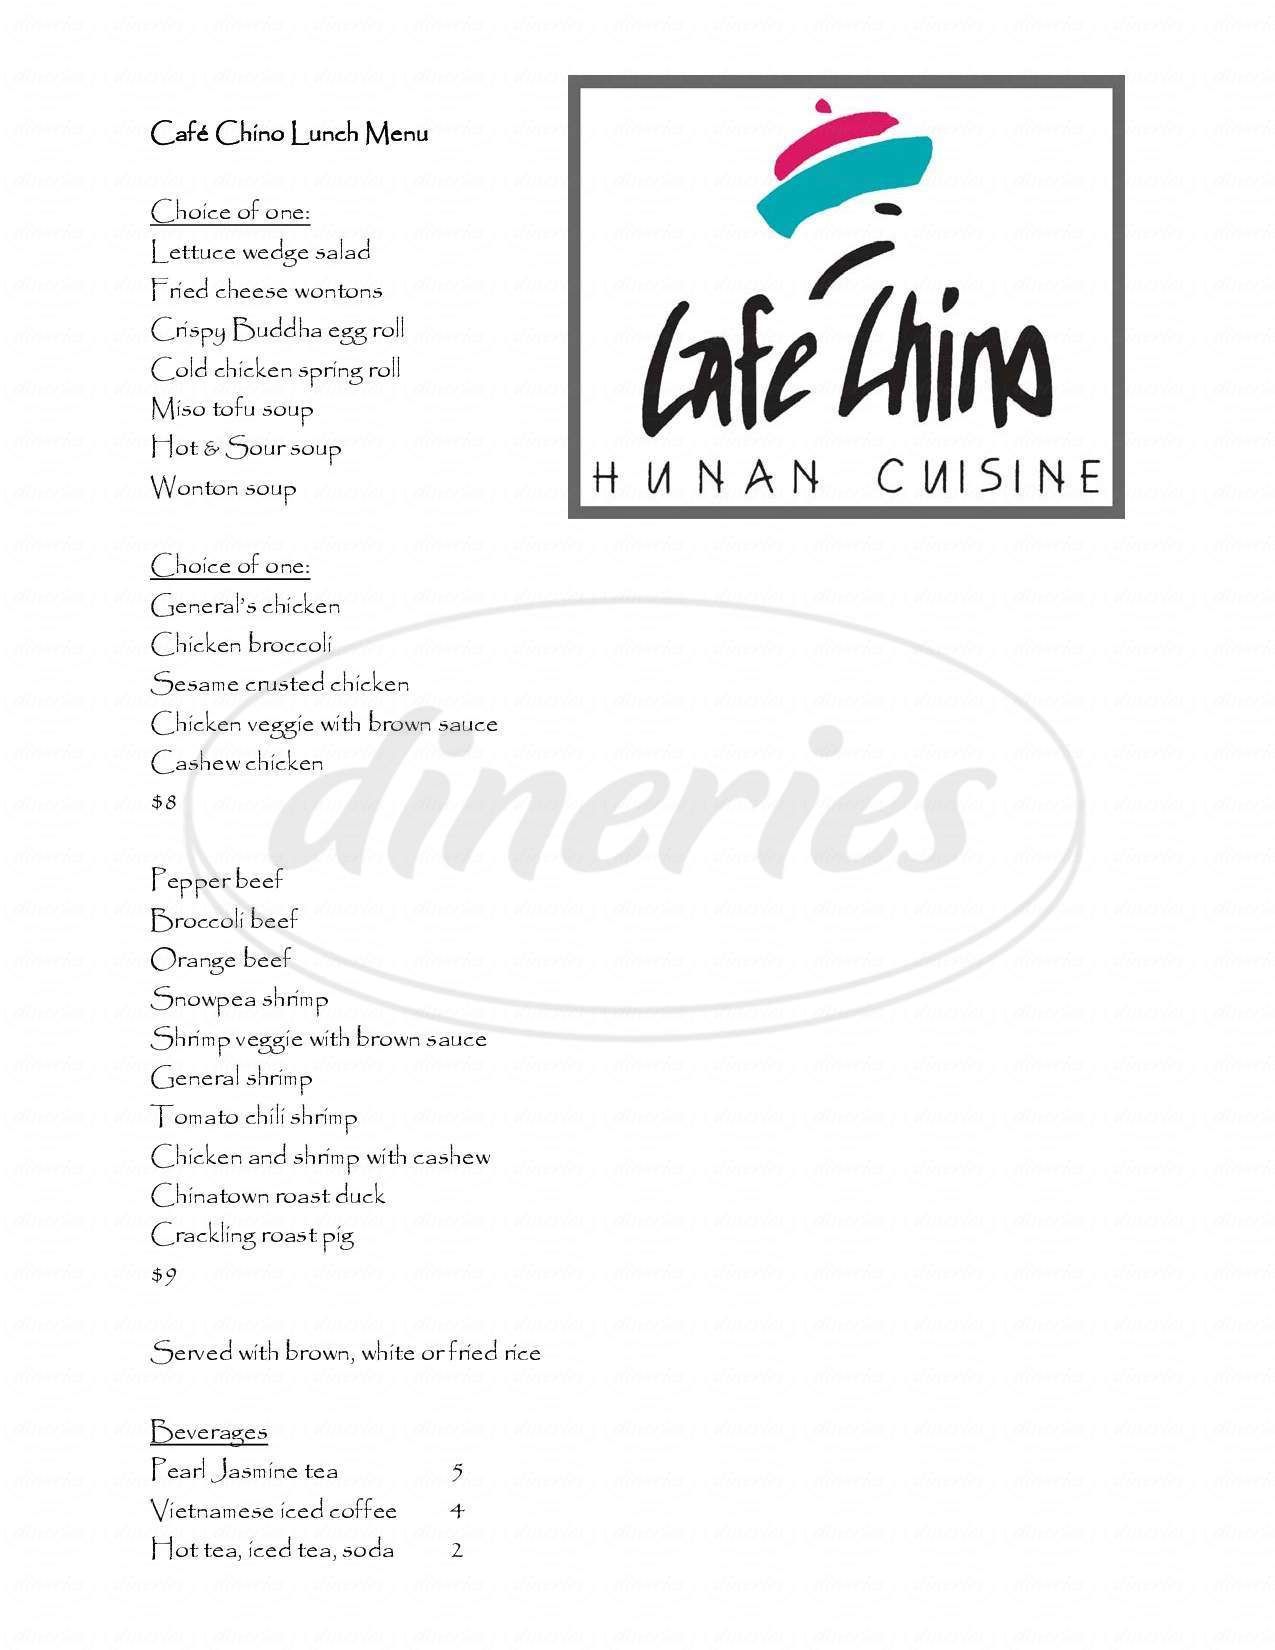 menu for Cafe Chino